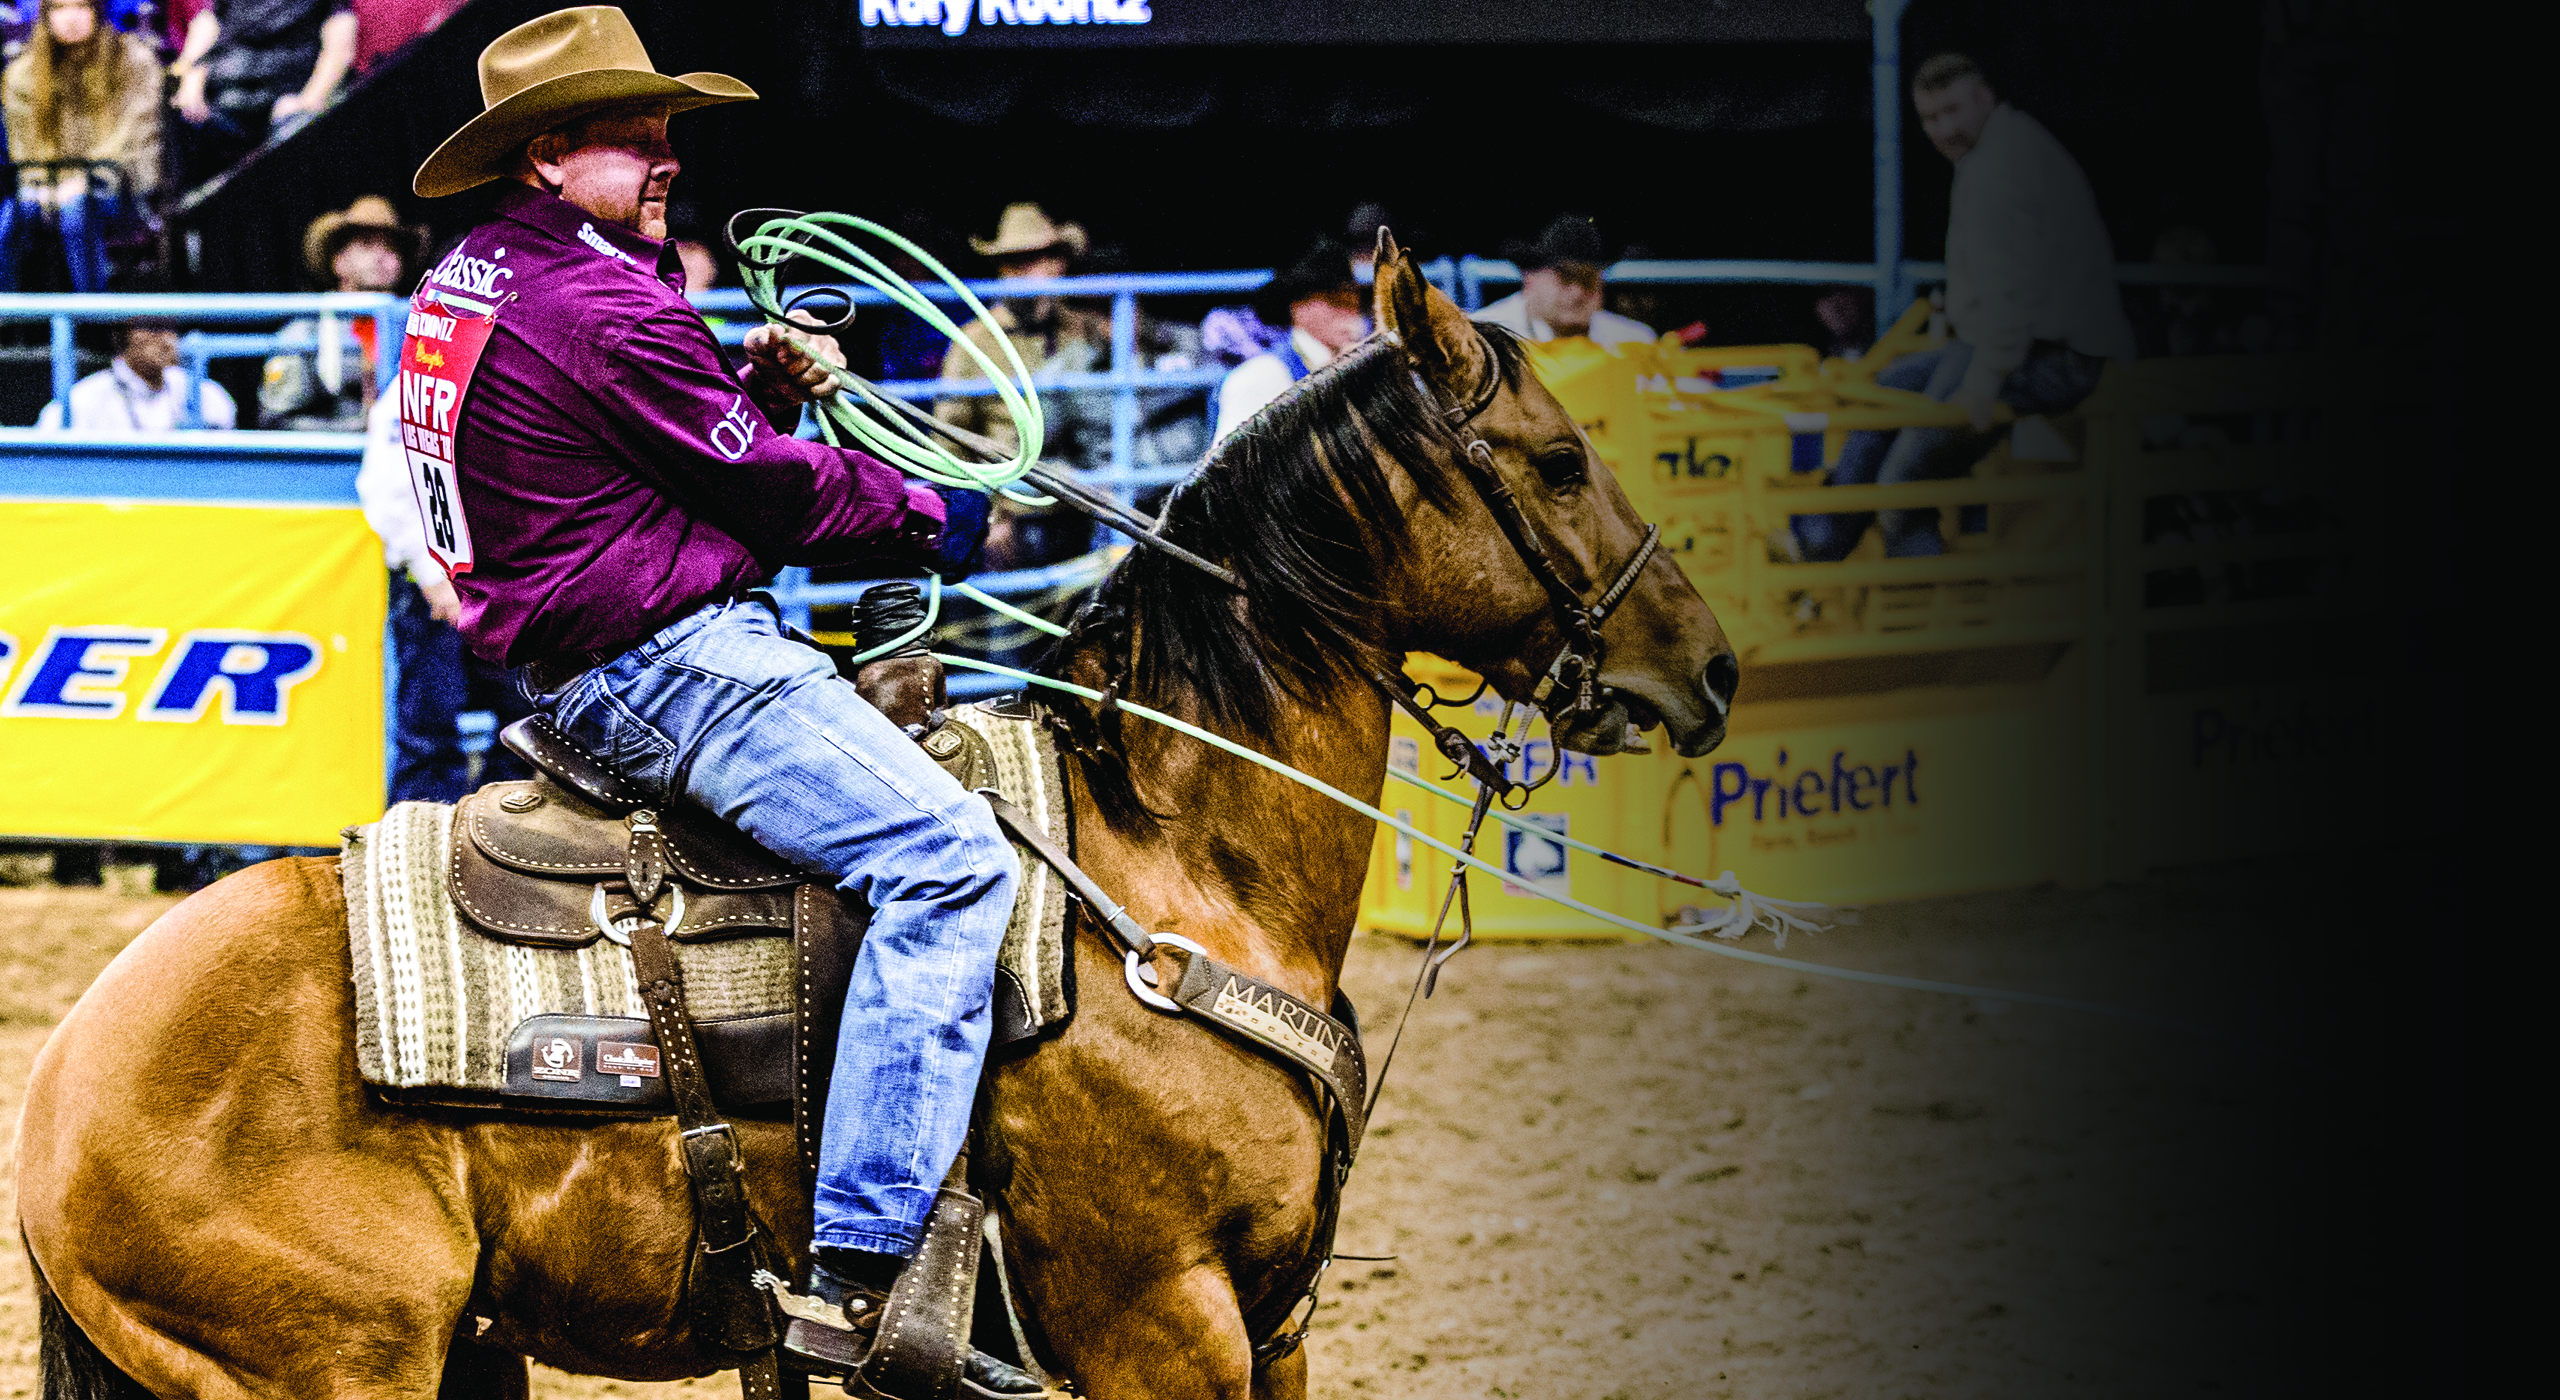 Kory Koontz, Professional Team Roper, competes with a Zone saddle pad